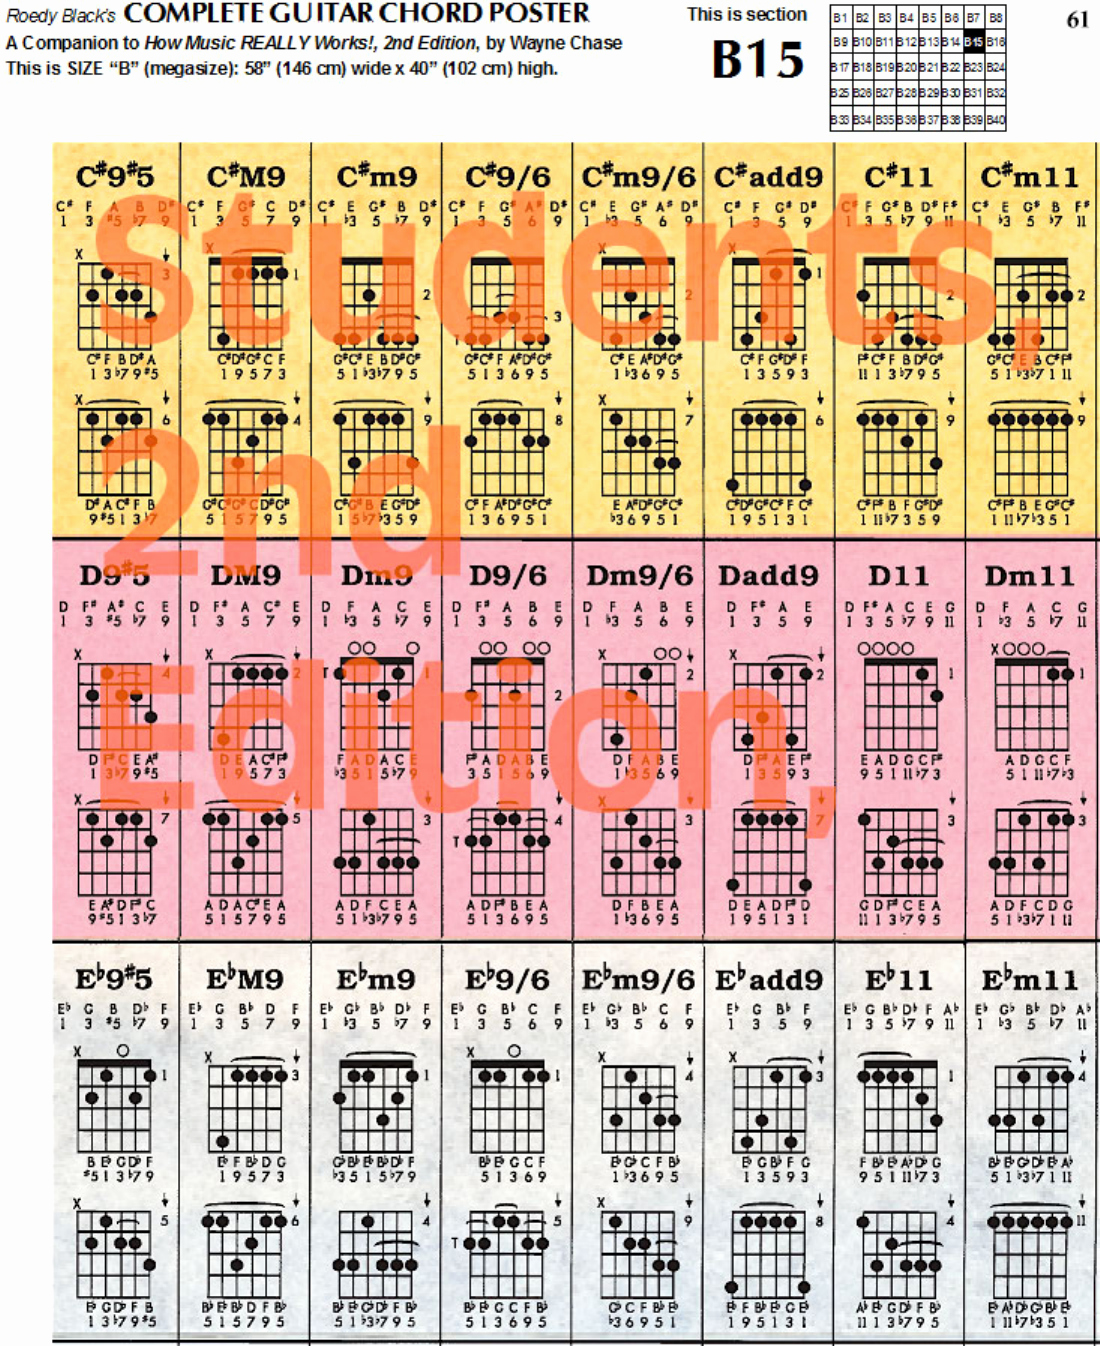 Chord Chart Guitar Complete Lovely Download Plete Guitar Chord Chart Template for Free